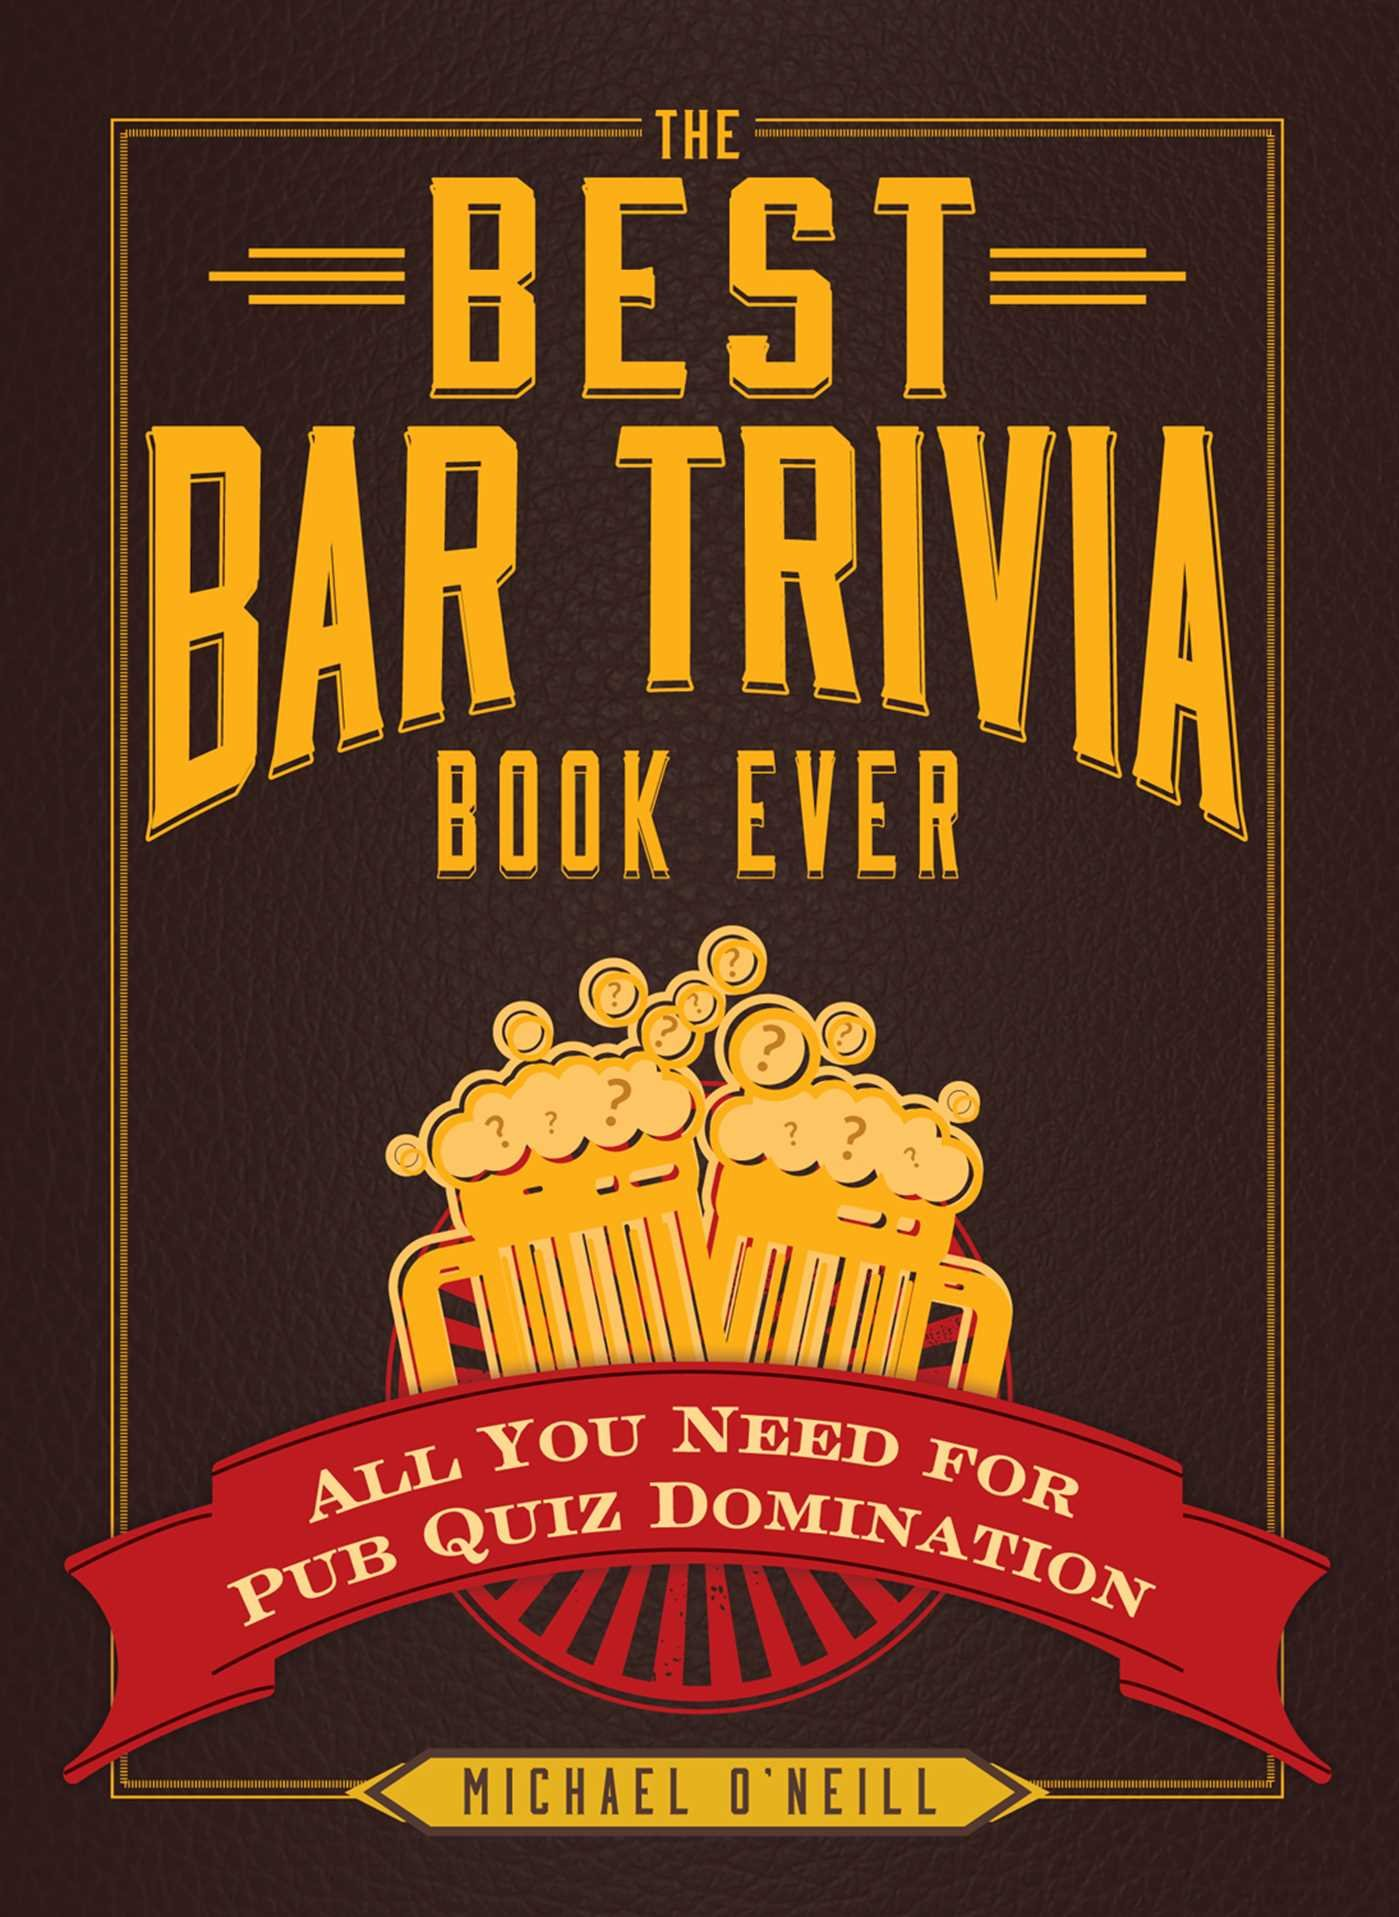 The Best Bar Trivia Book Ever: All You Need for Pub Quiz Domination:  Michael O'Neill: 9781440579479: Amazon.com: Books